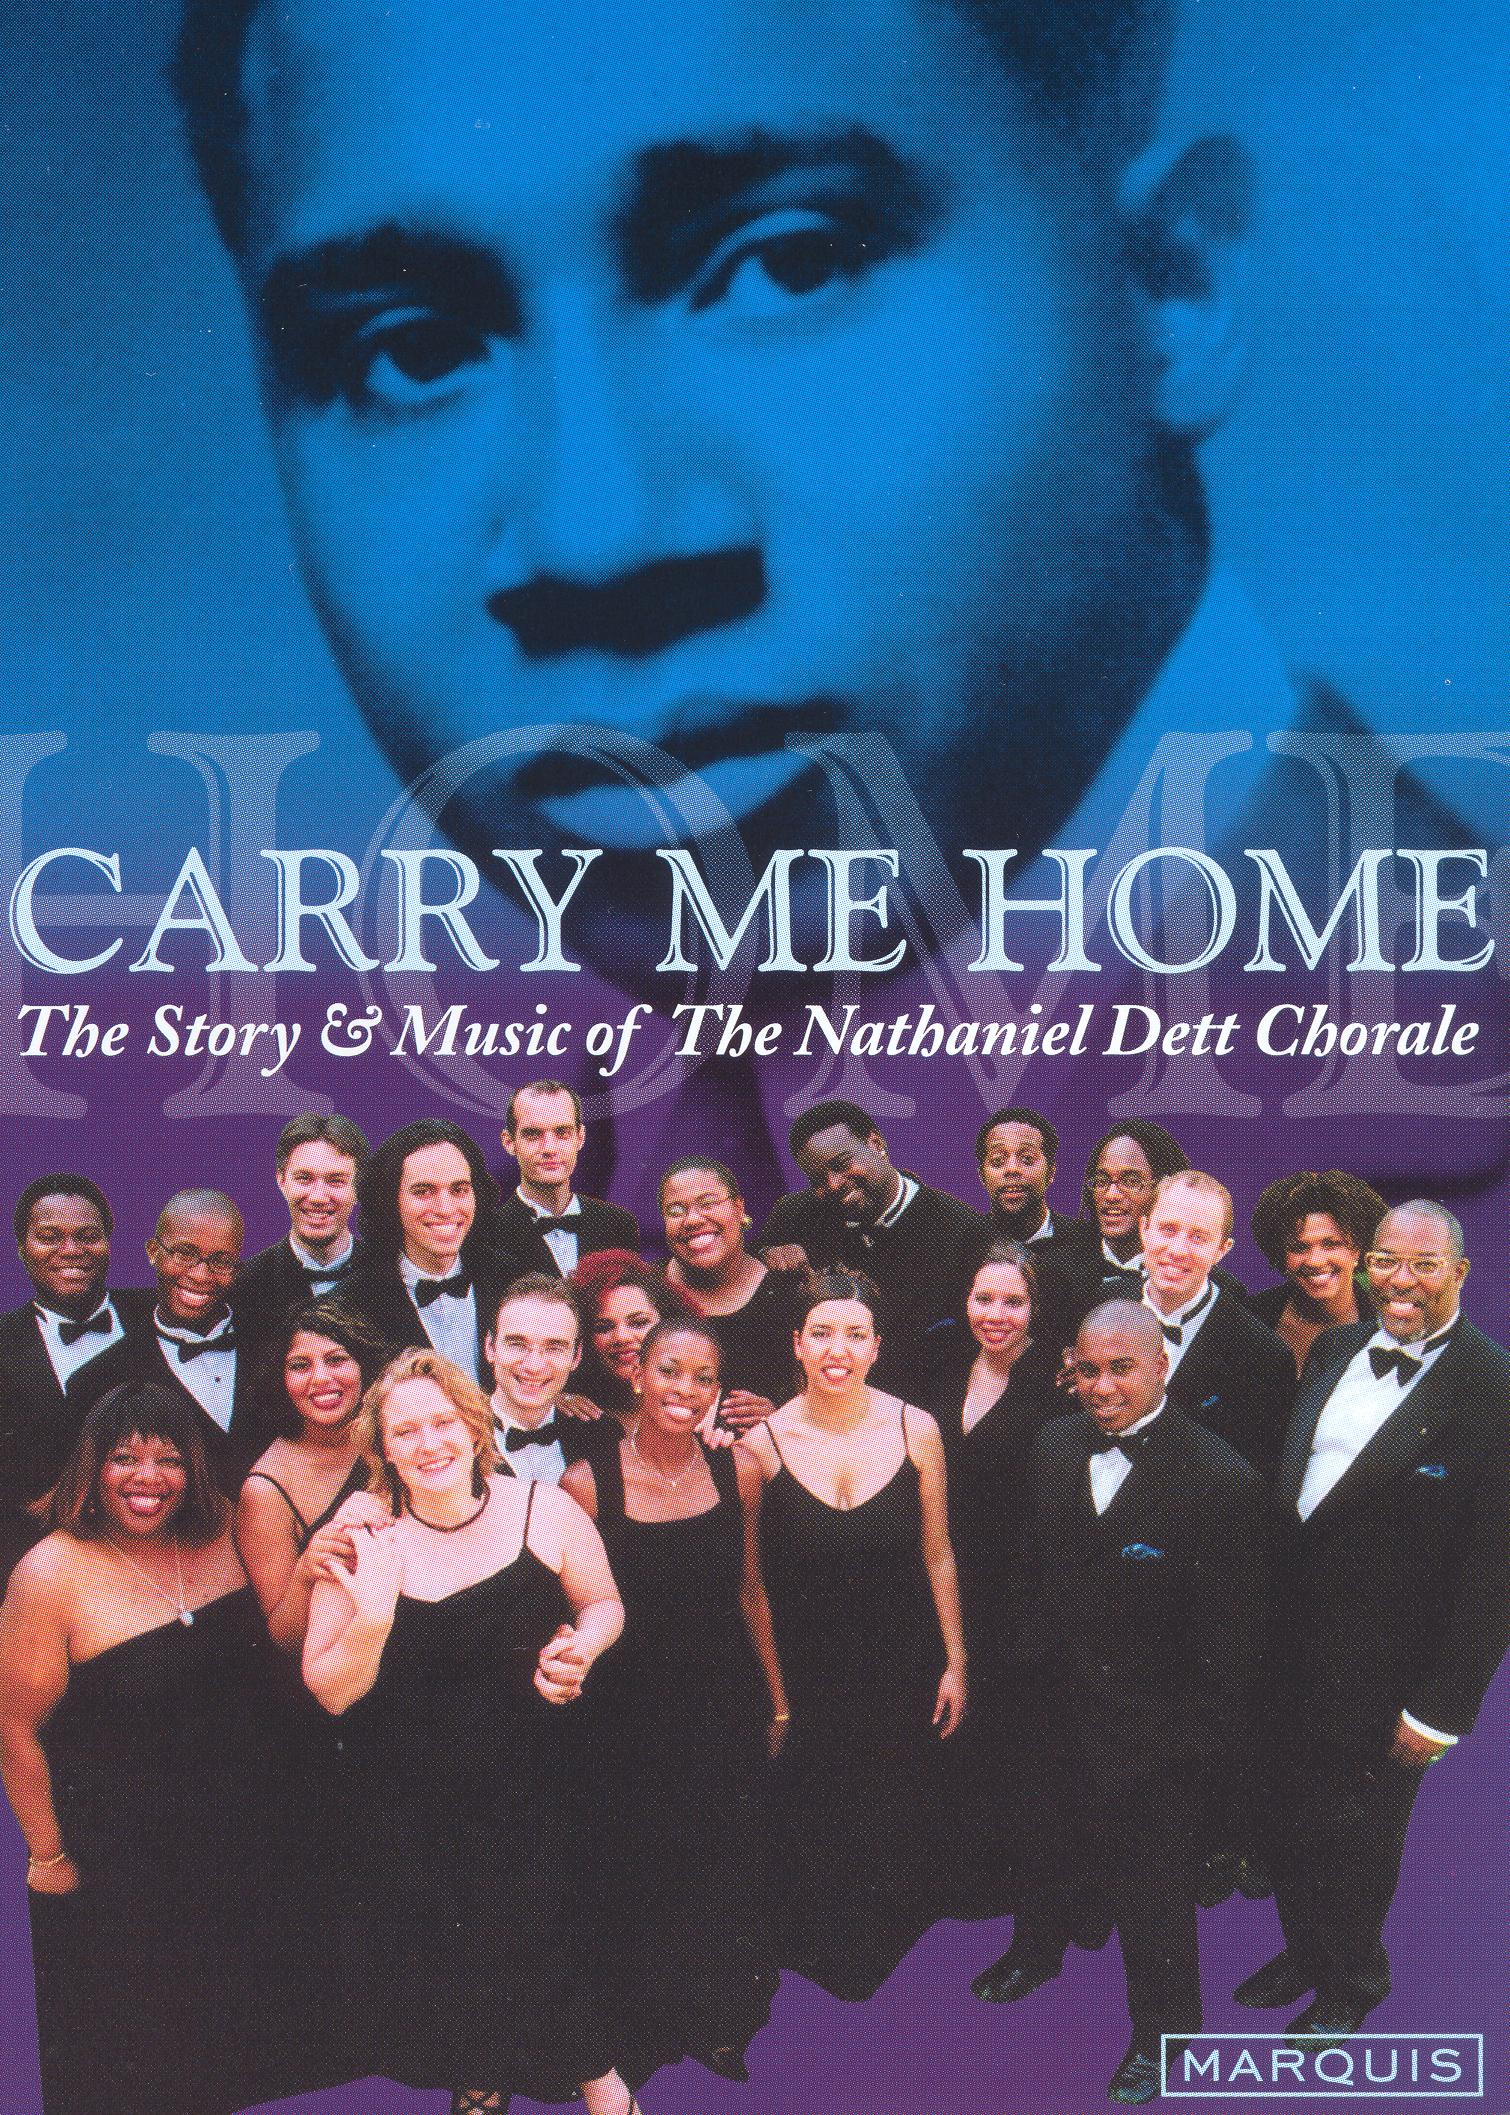 Carry Me Home: The Story & Music of the Nathaniel Dett Chorale